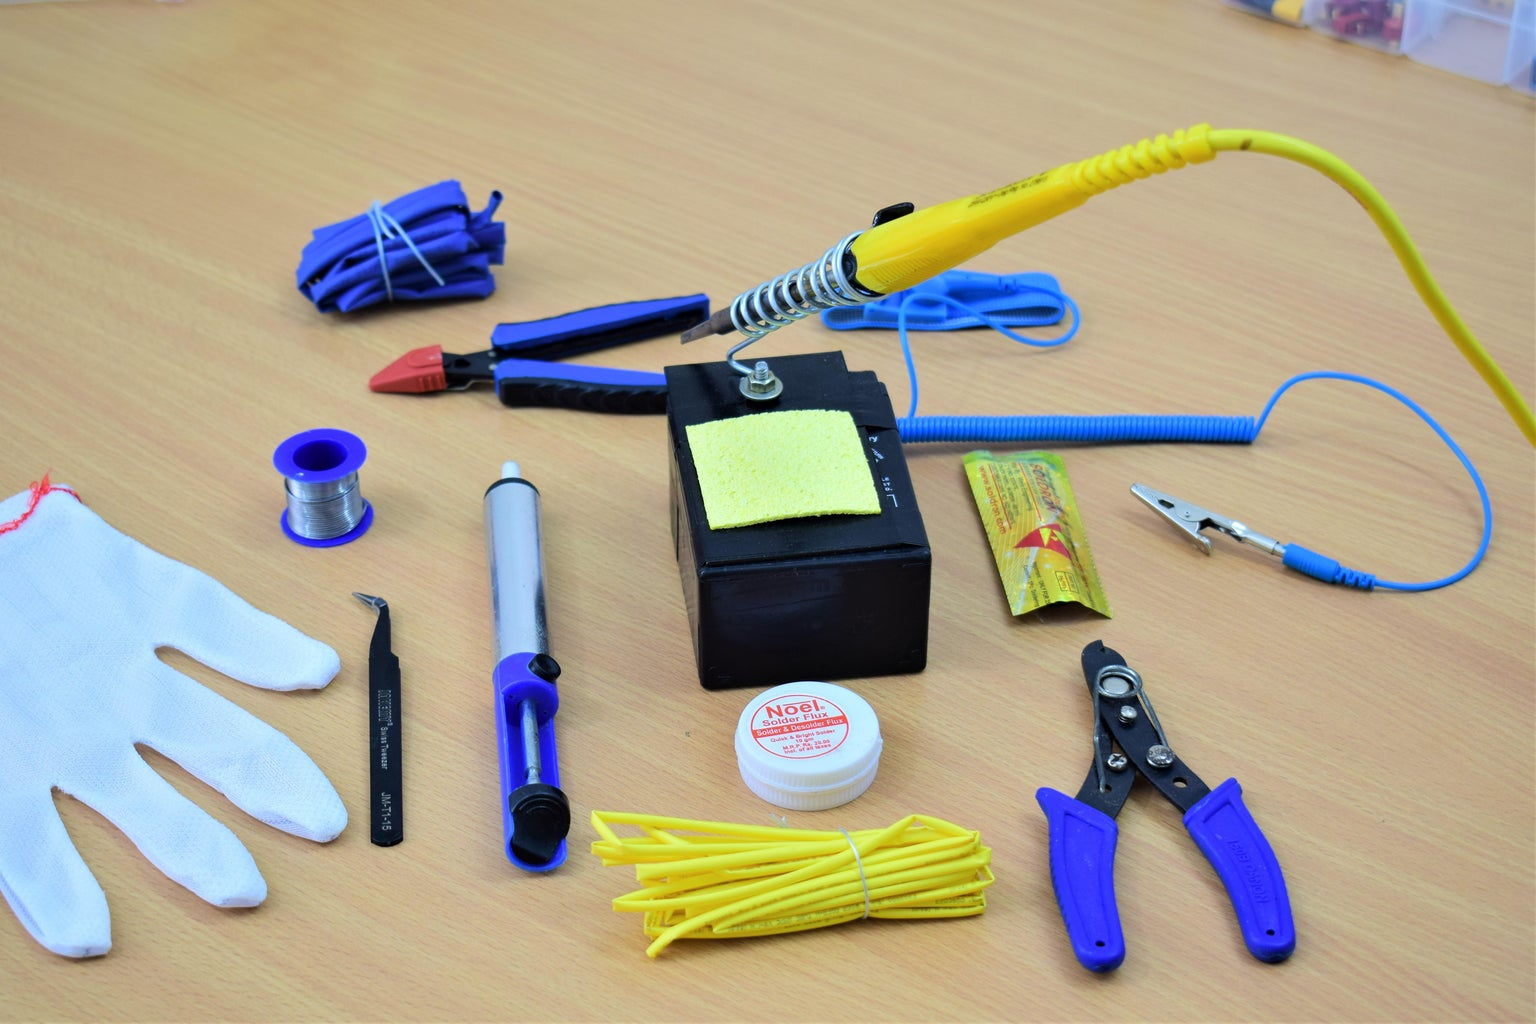 THE SUGGESTED TOOLS